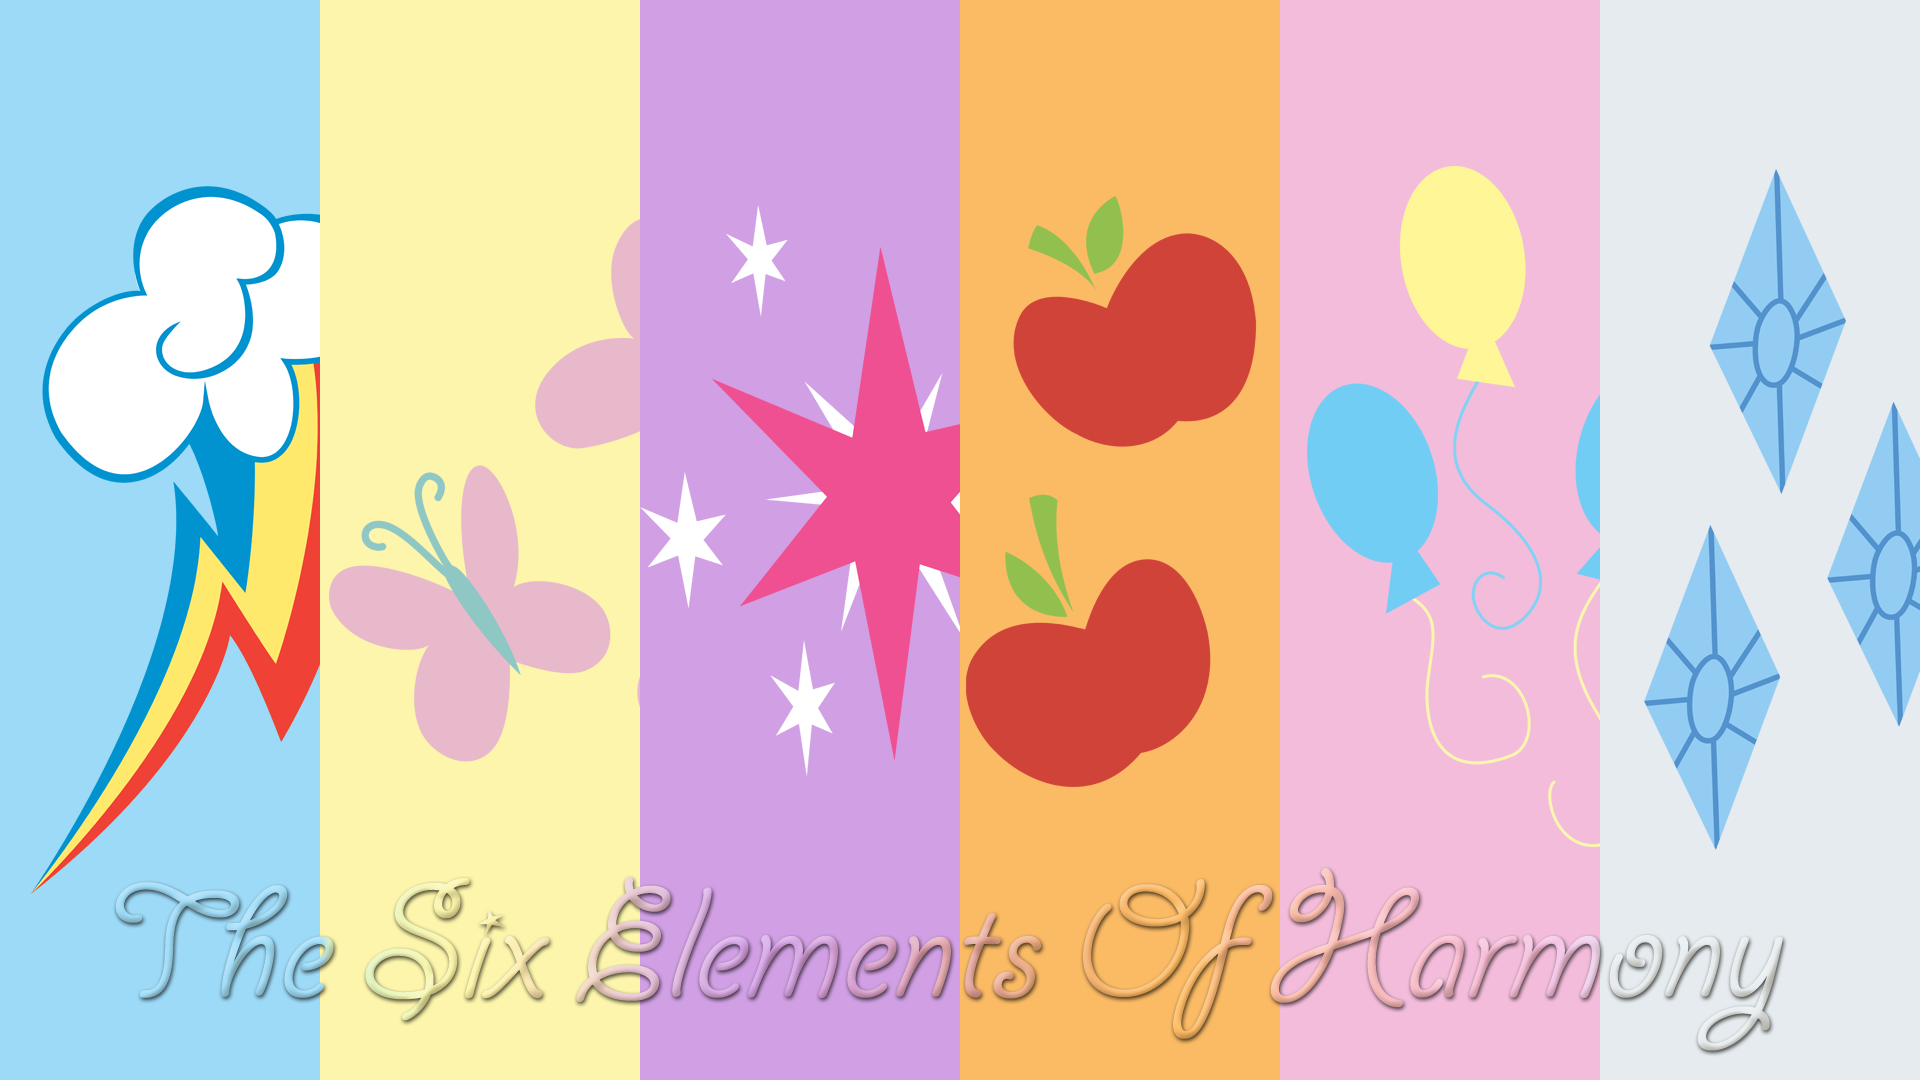 6 Elements Of Art : The six elements of harmony by bluedragonhans on deviantart